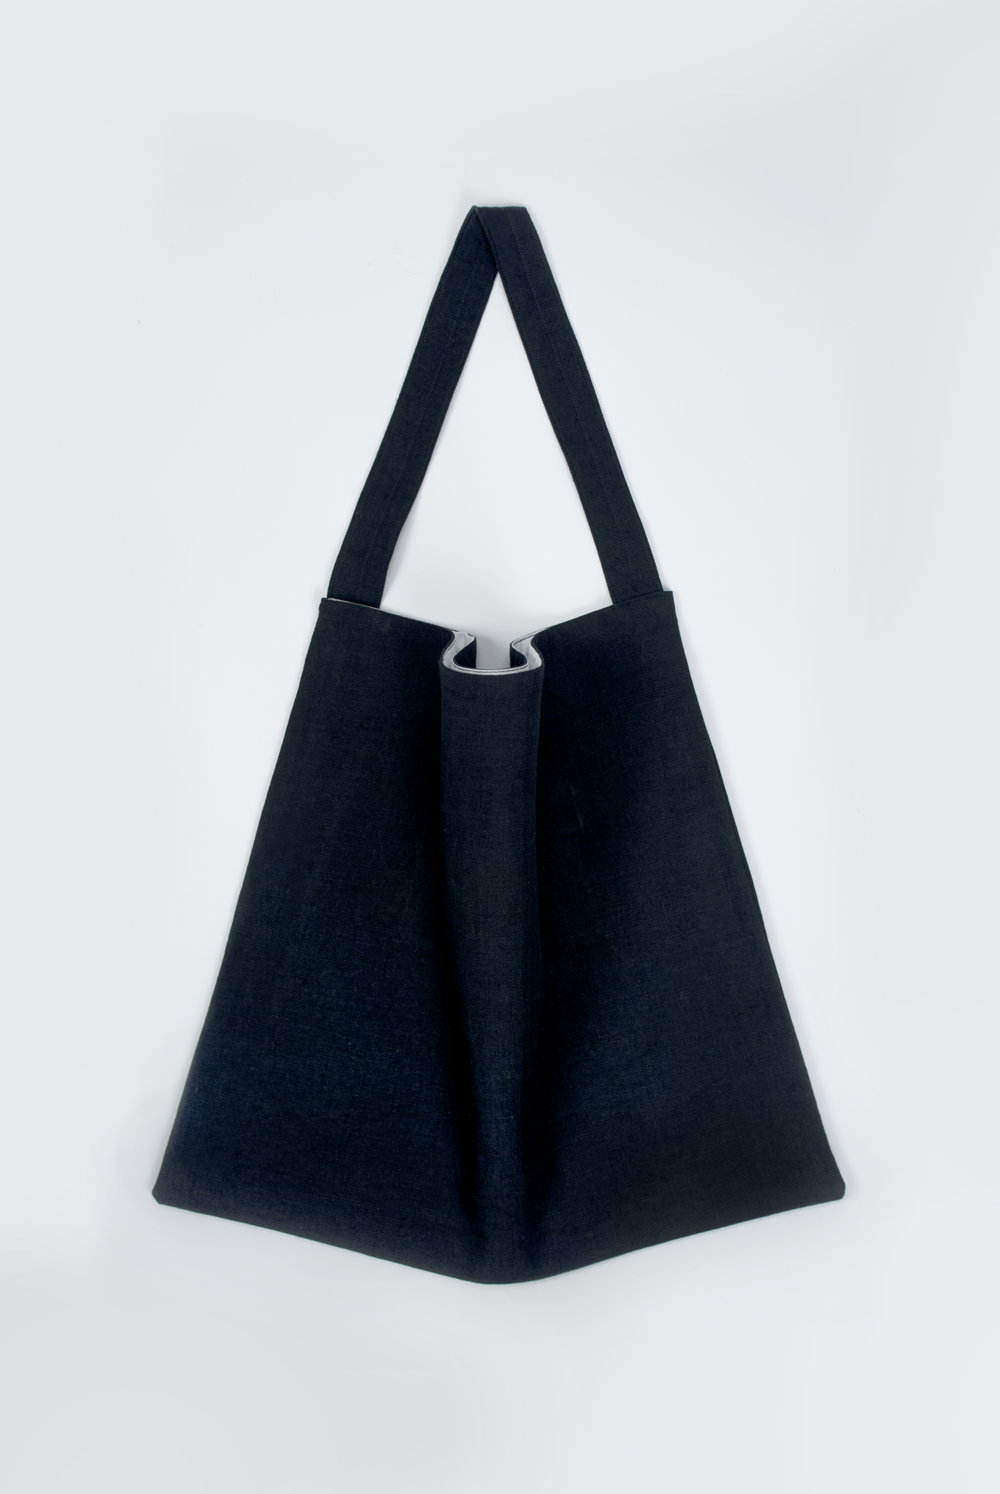 The navy linen #029 tote bag